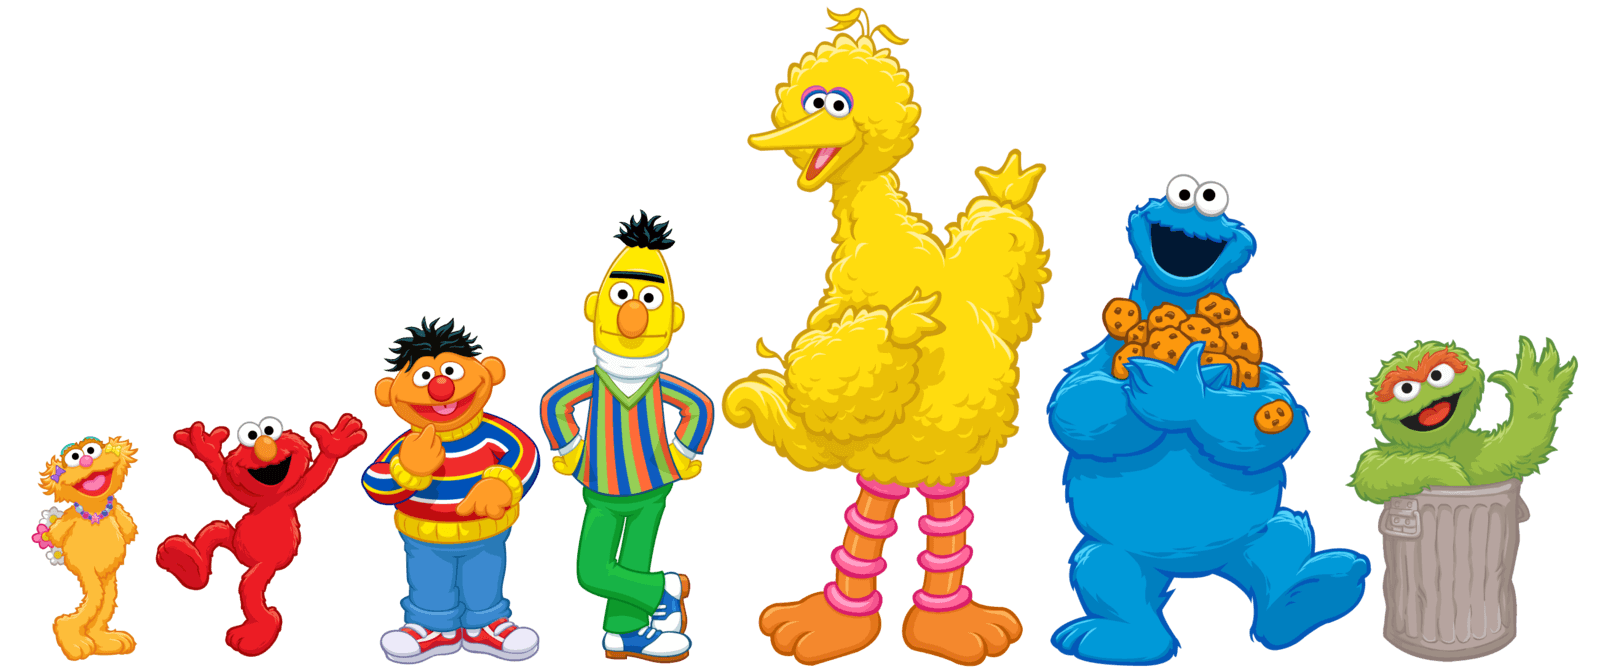 Sesame Street Wallpaper on oscar cut outs